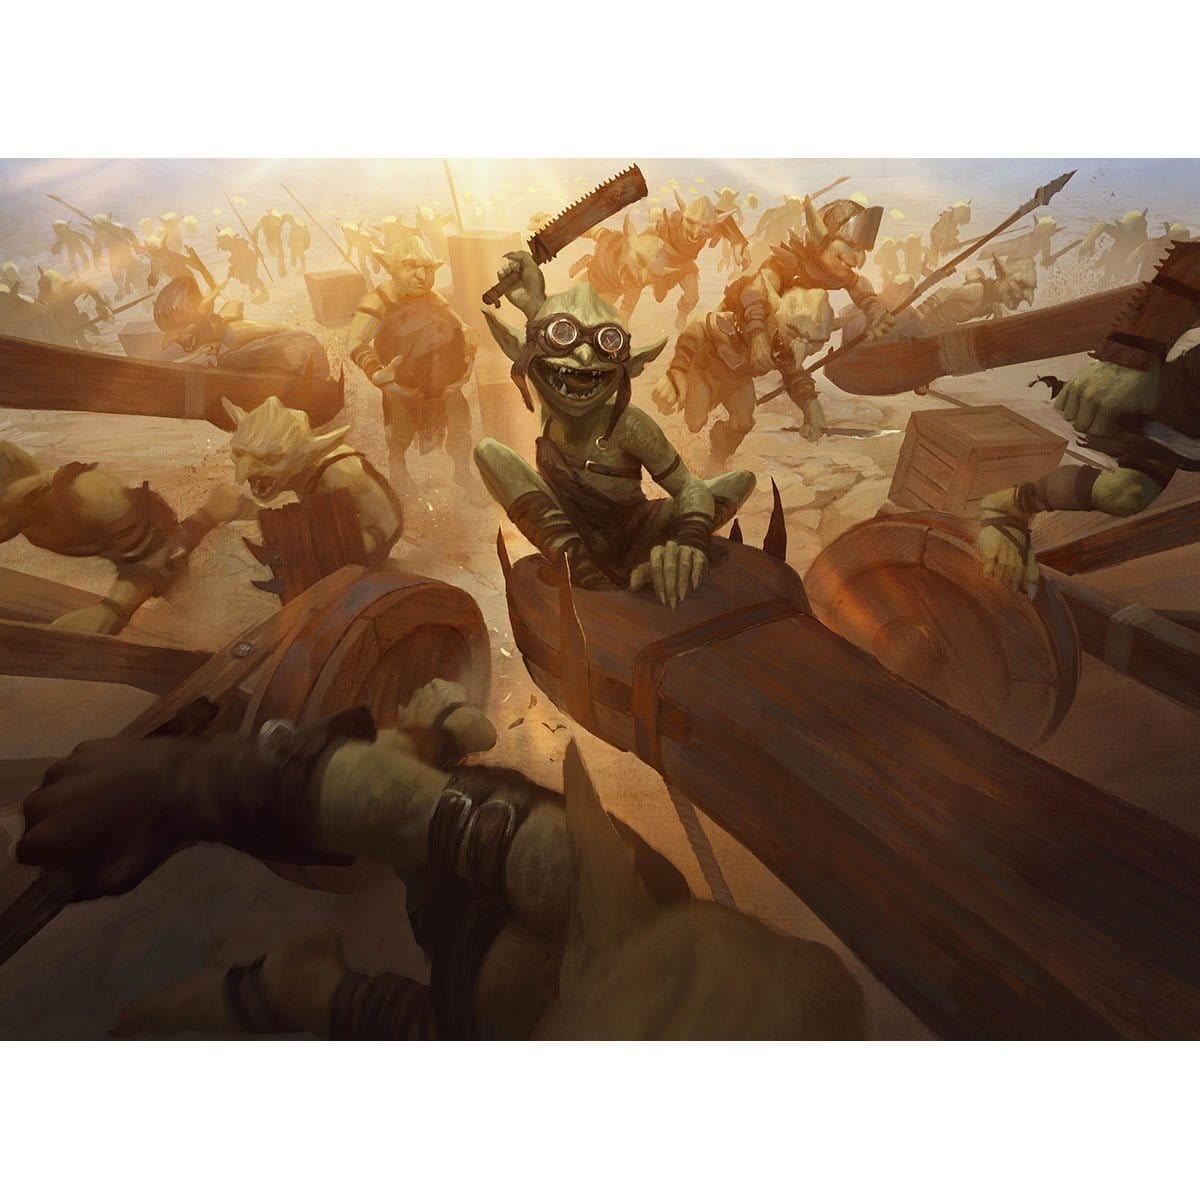 Goblin Barrage Print - Print - Original Magic Art - Accessories for Magic the Gathering and other card games